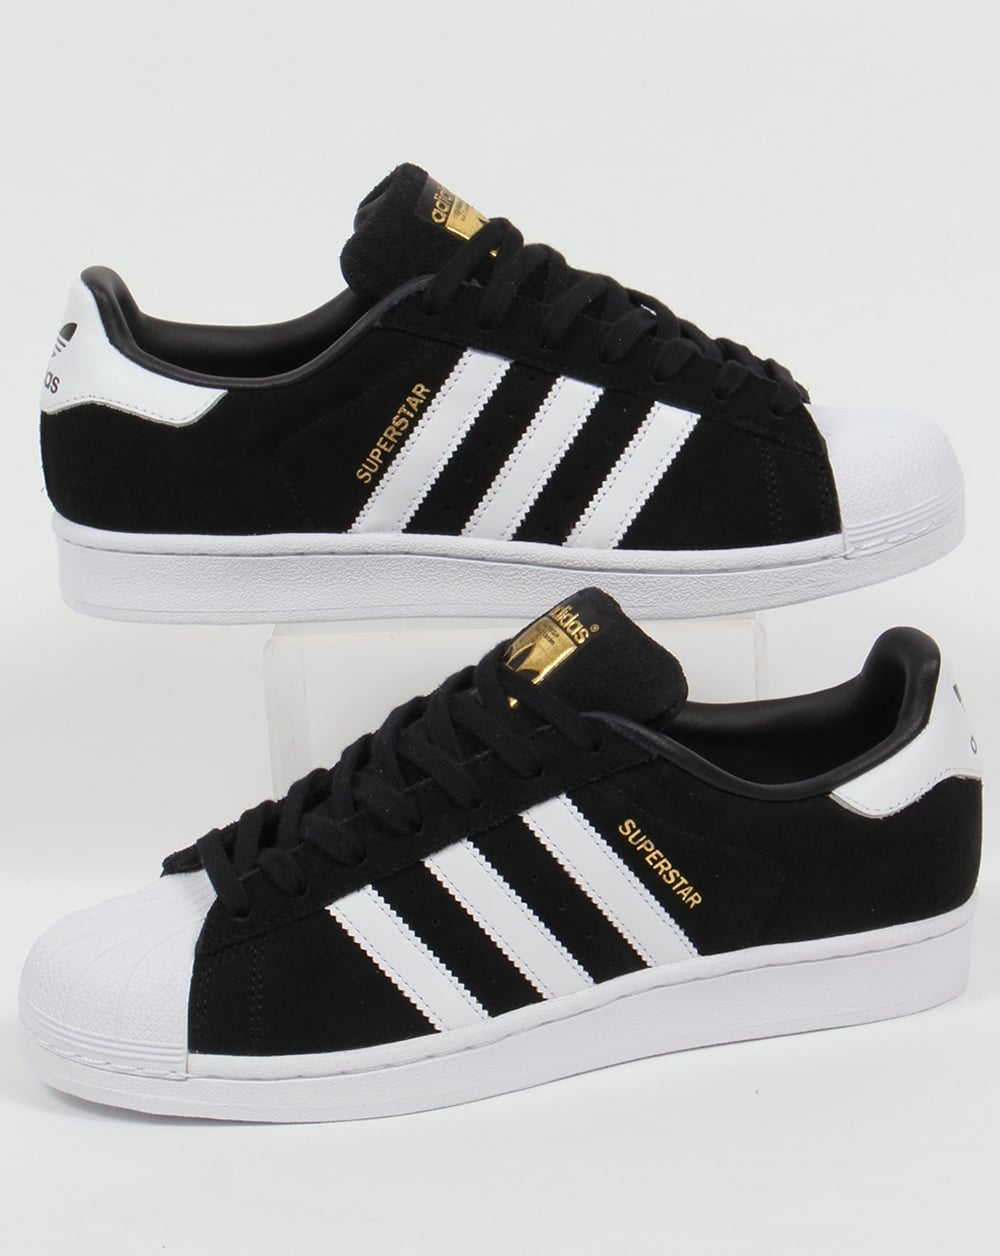 7e0b15d0456e7 Adidas Superstar Suede Trainers Black/white